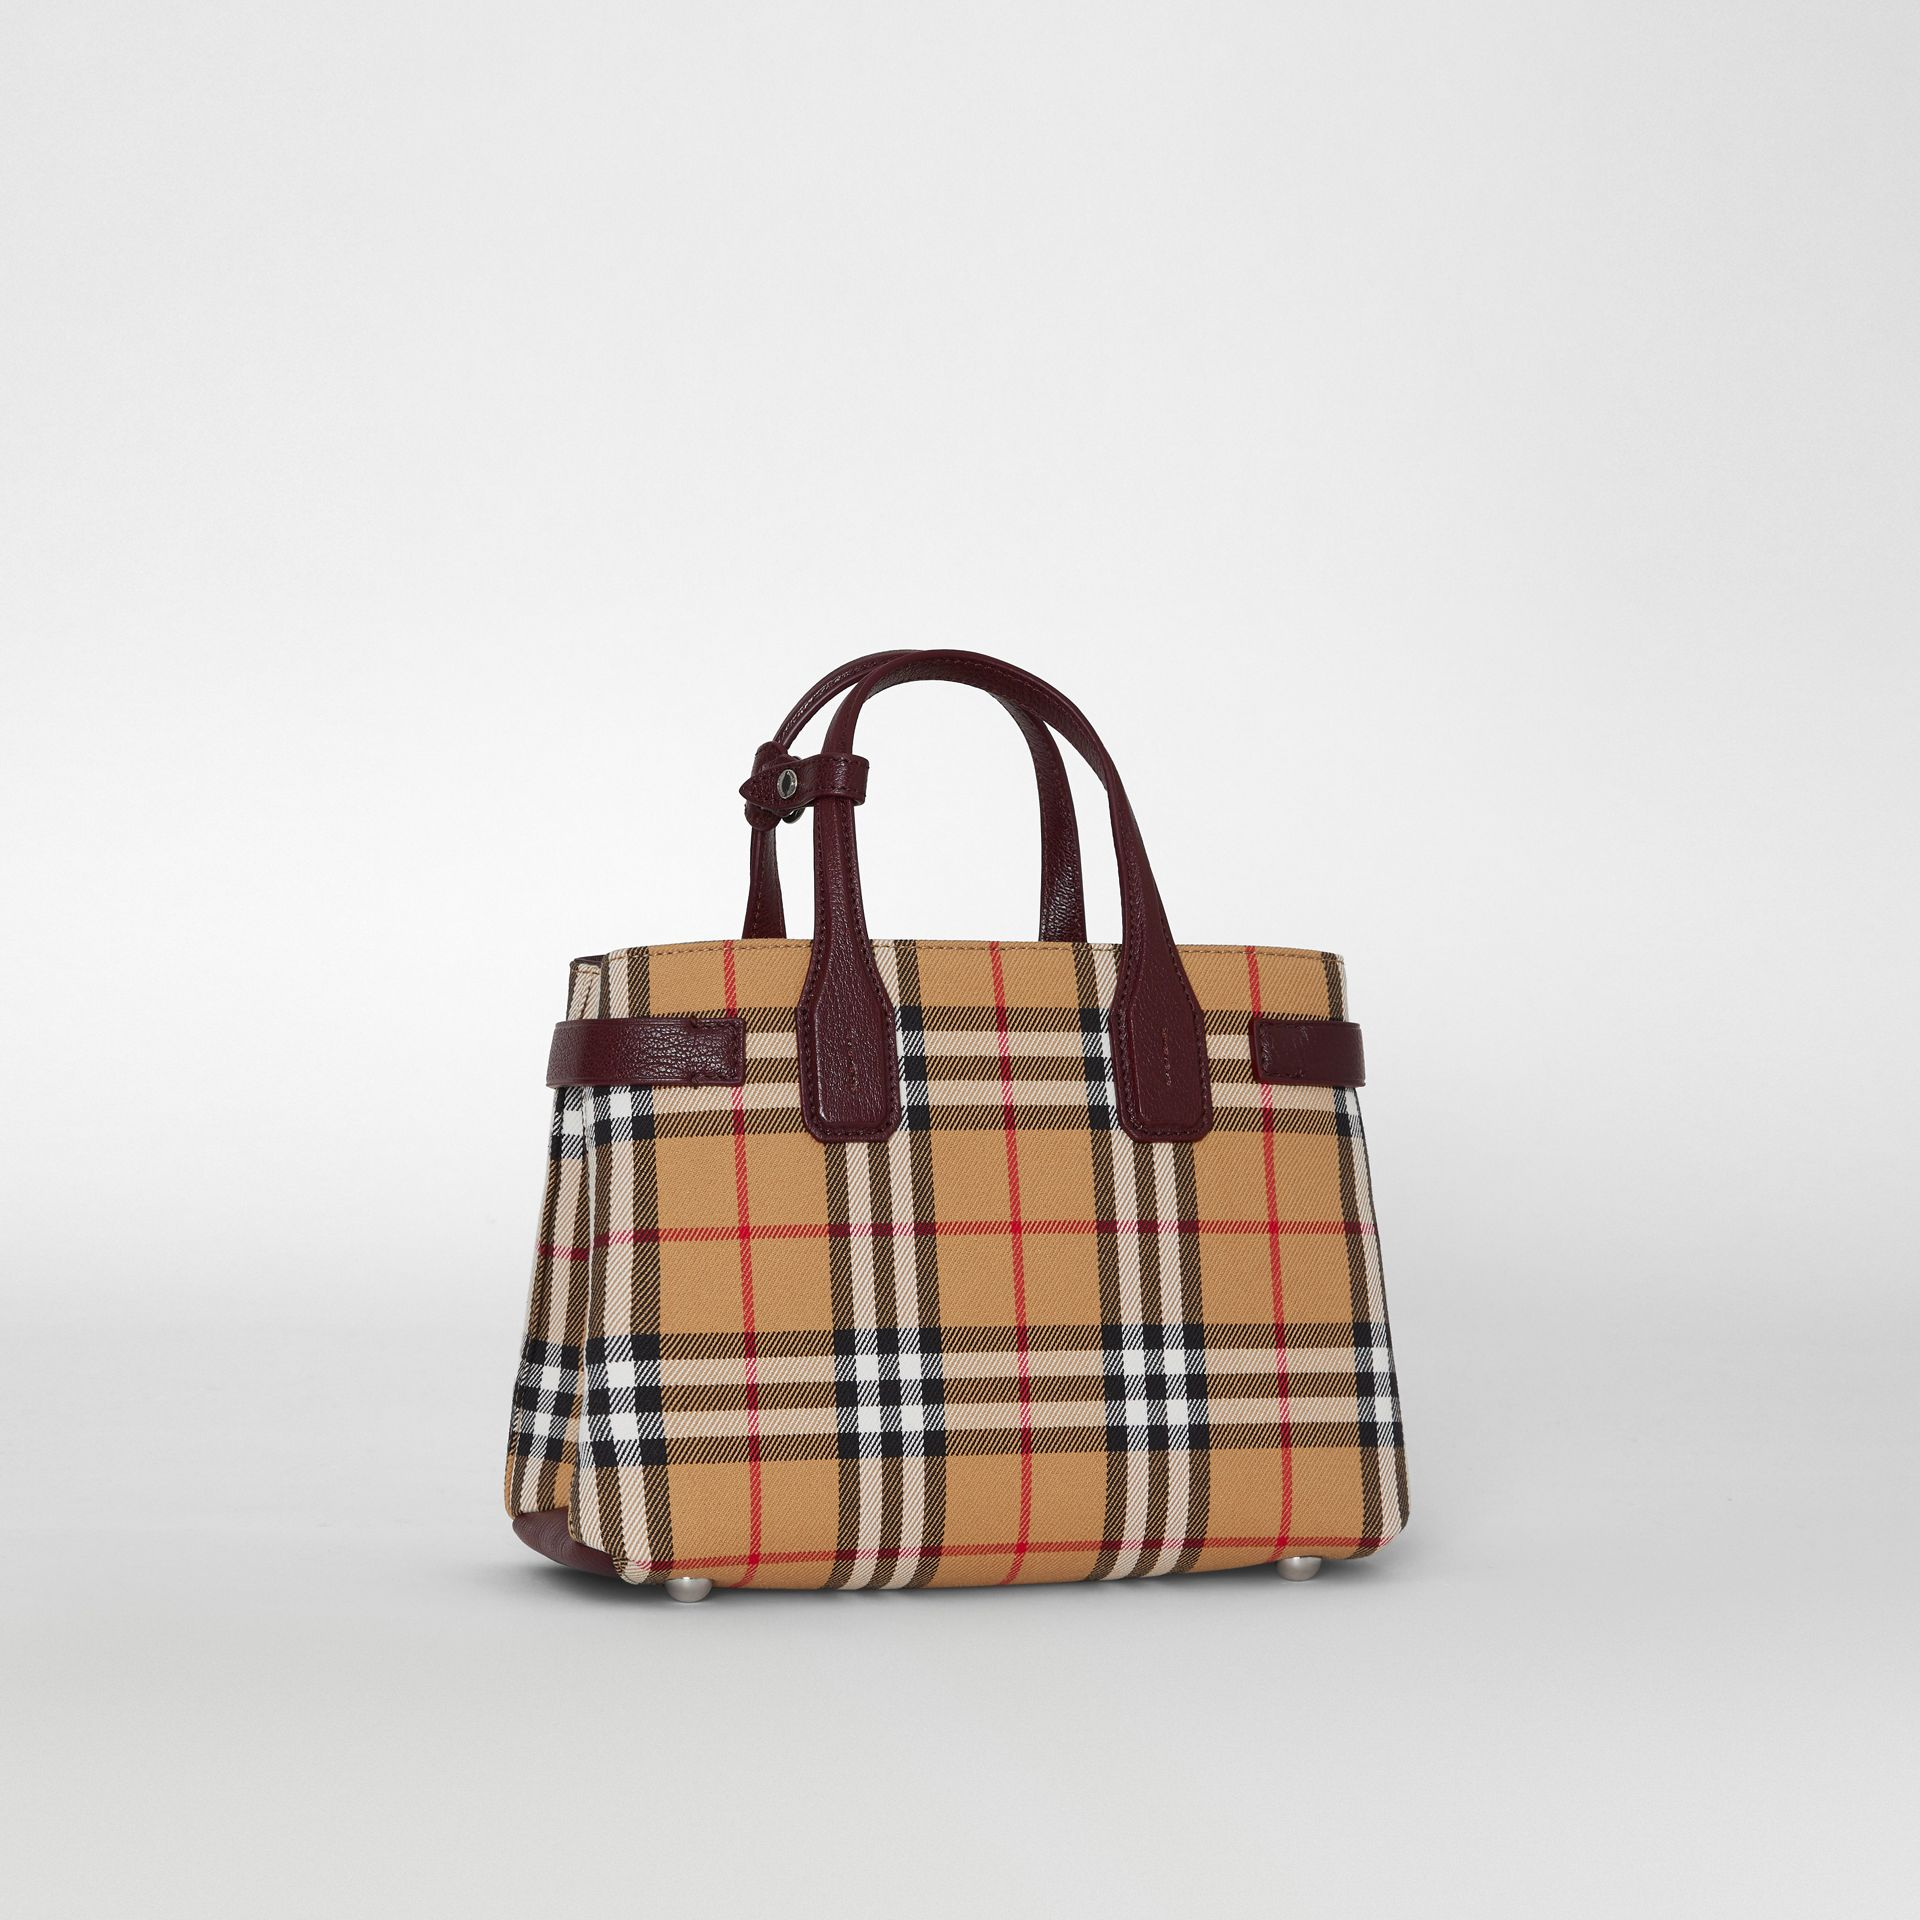 Petit sac The Banner en tissu Vintage check et cuir (Bordeaux Intense) - Femme | Burberry - photo de la galerie 6